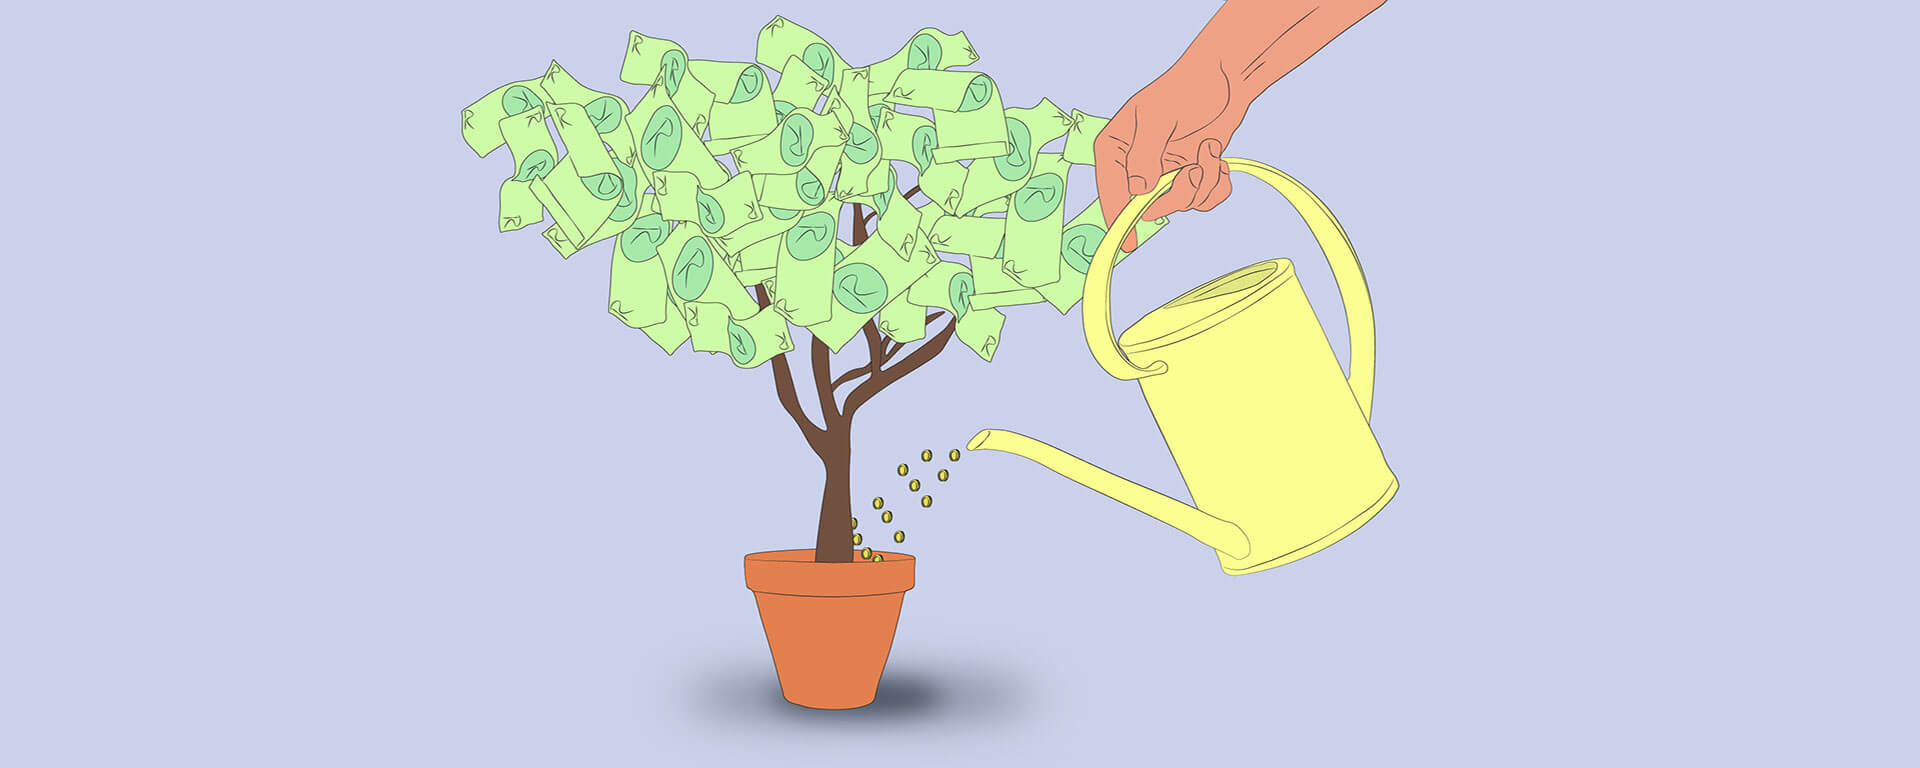 Growing your investment tree to reach financial freedom